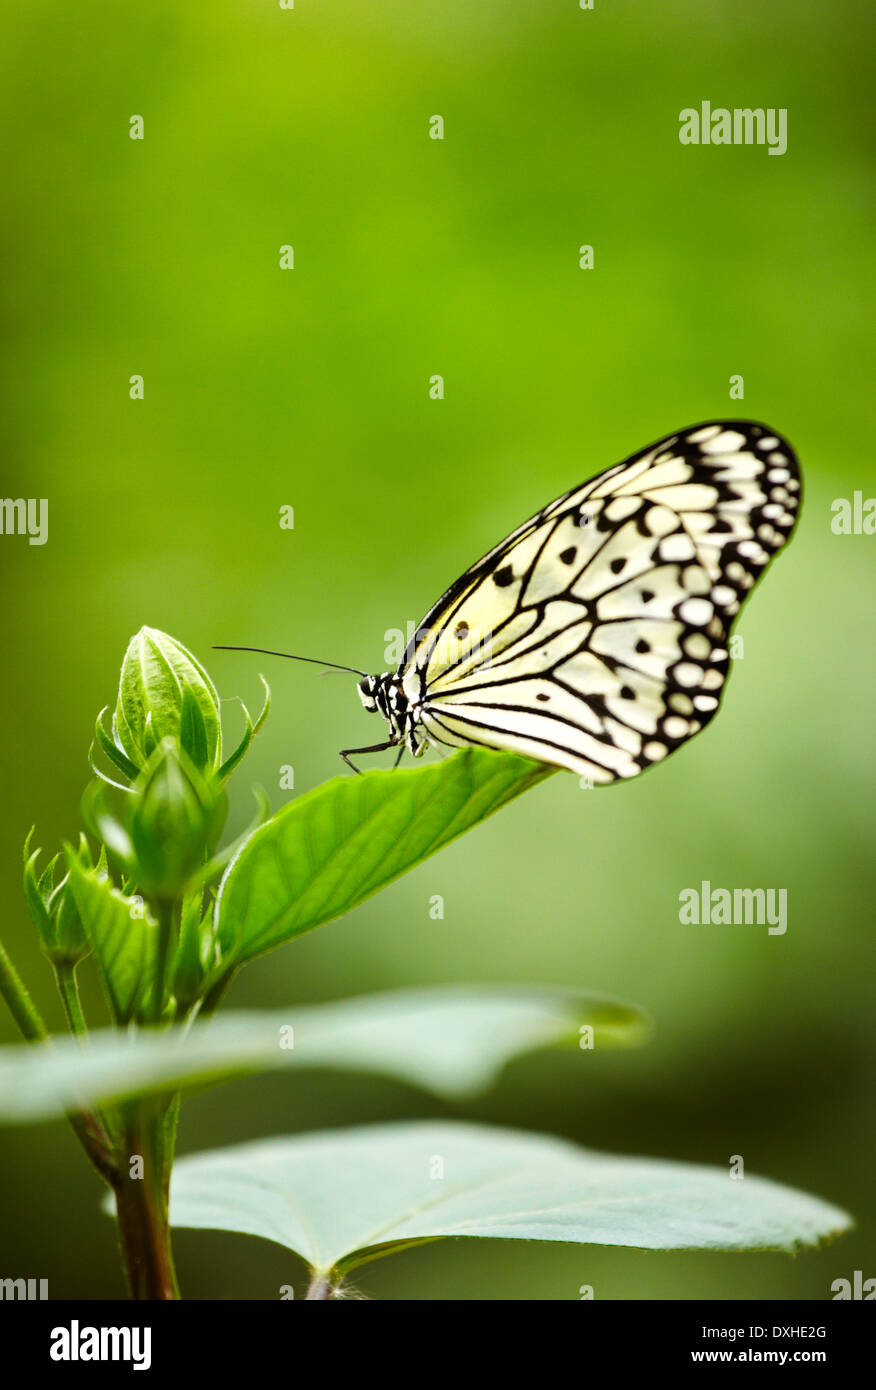 The Paper Kite, Rice paper or Large Tree Nymph (Idea leuconoe) butterfly. Butterfly garden. Hunawihr. Haut Rhin. Alsace. France - Stock Image